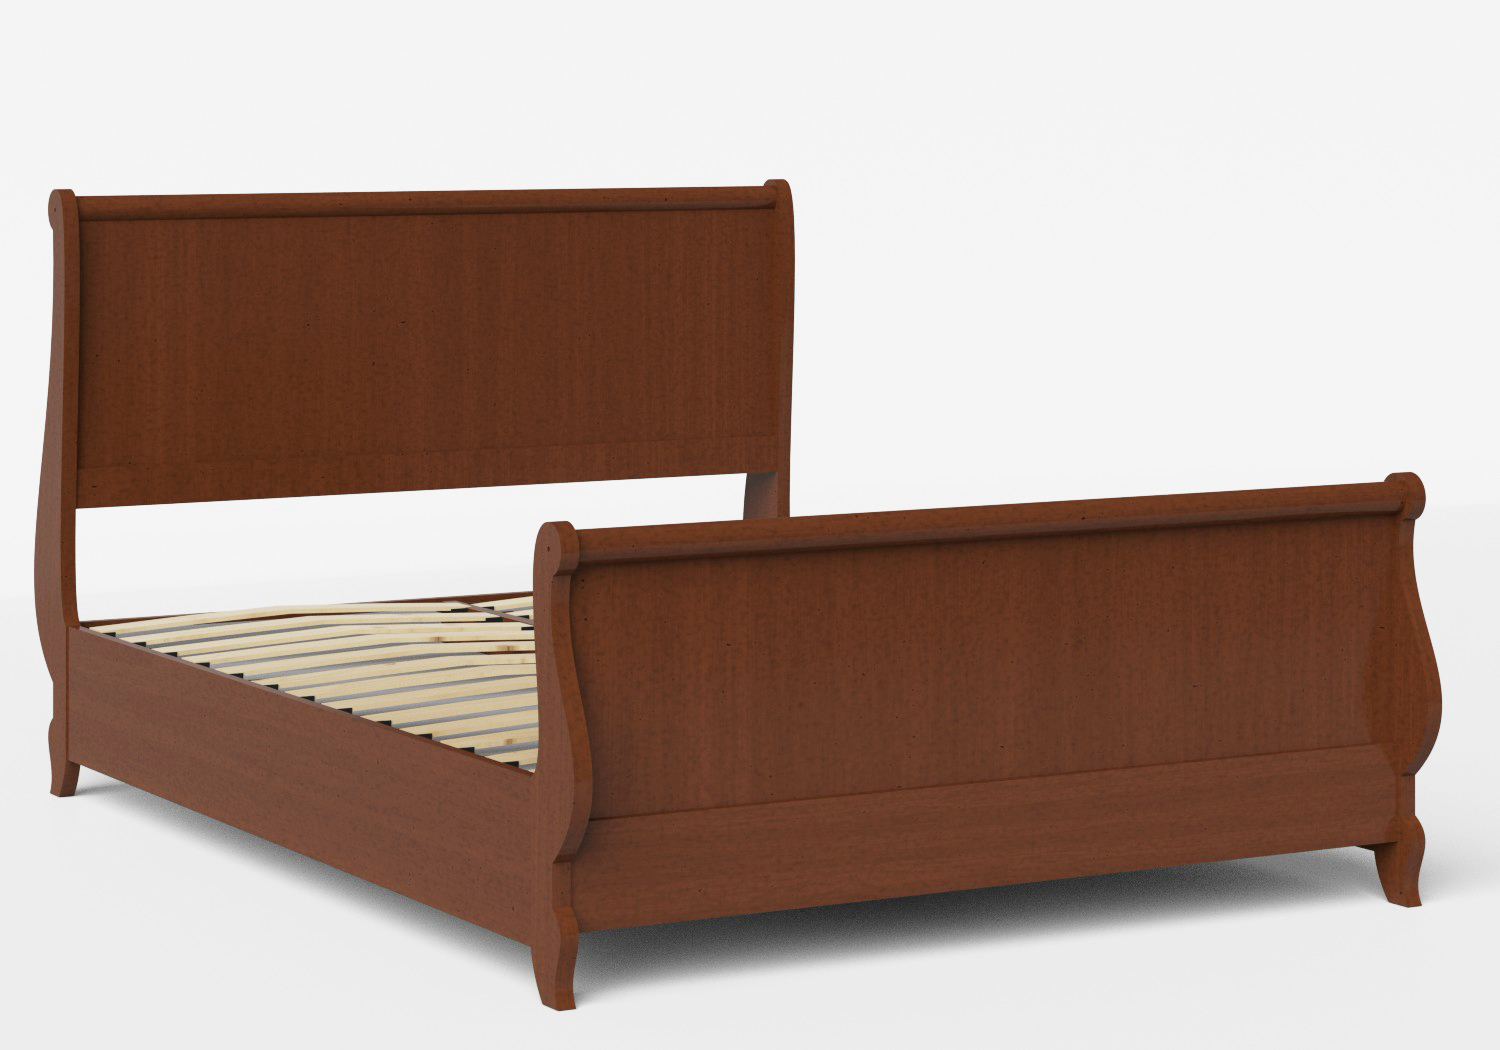 Elliot Wood Bed in Dark Cherry shown with slatted frame